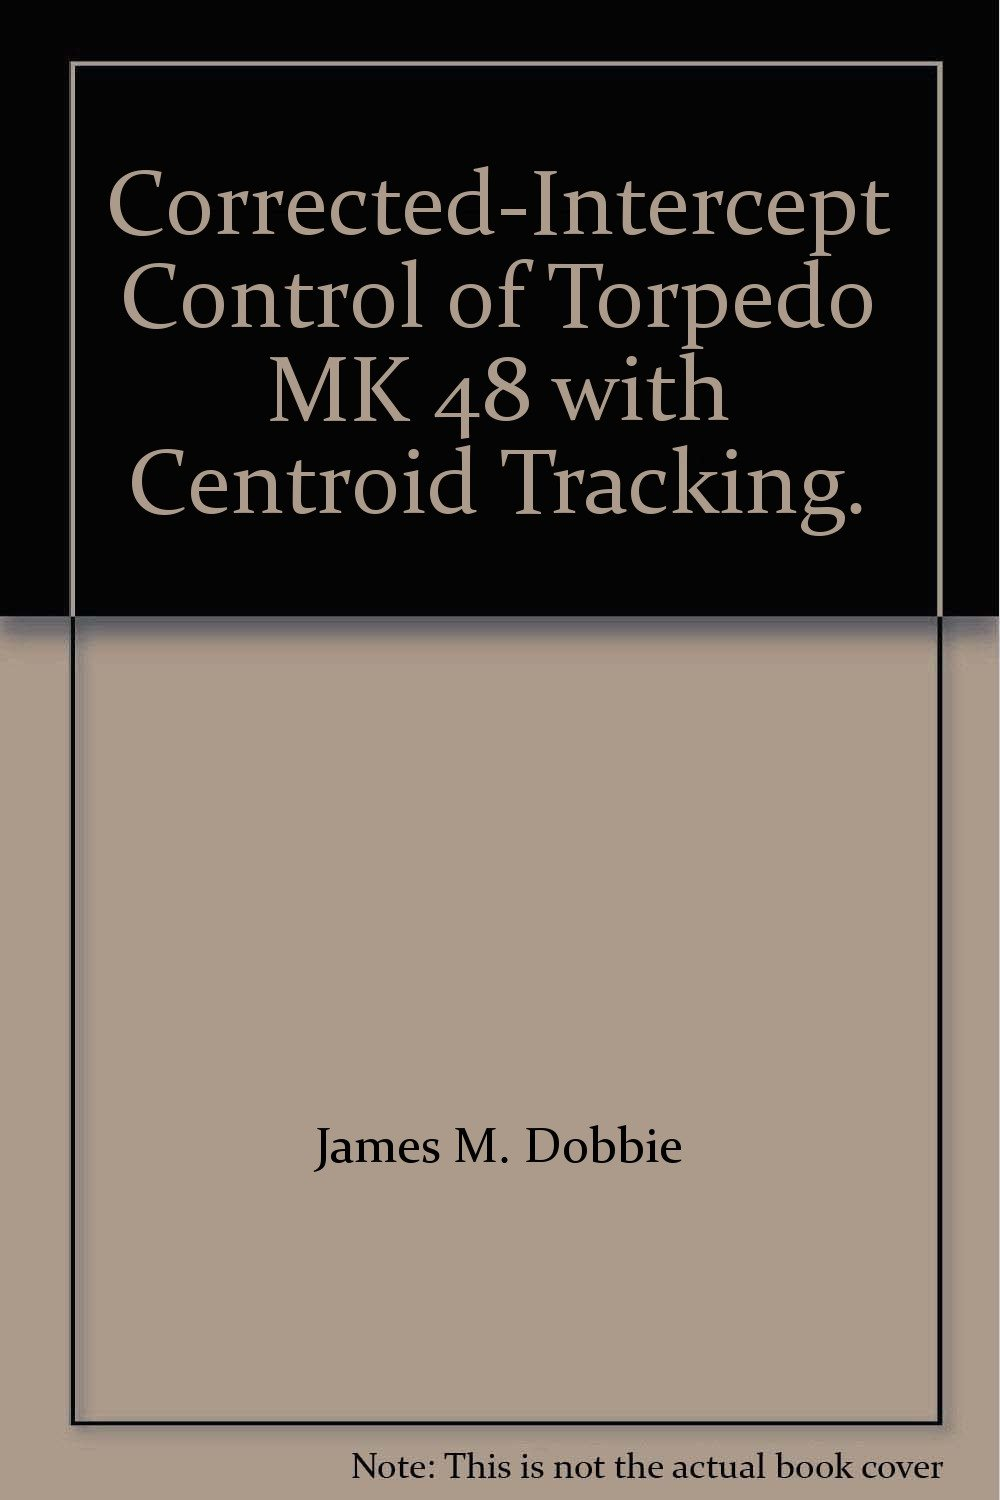 Corrected-Intercept Control of Torpedo MK 48 with Centroid